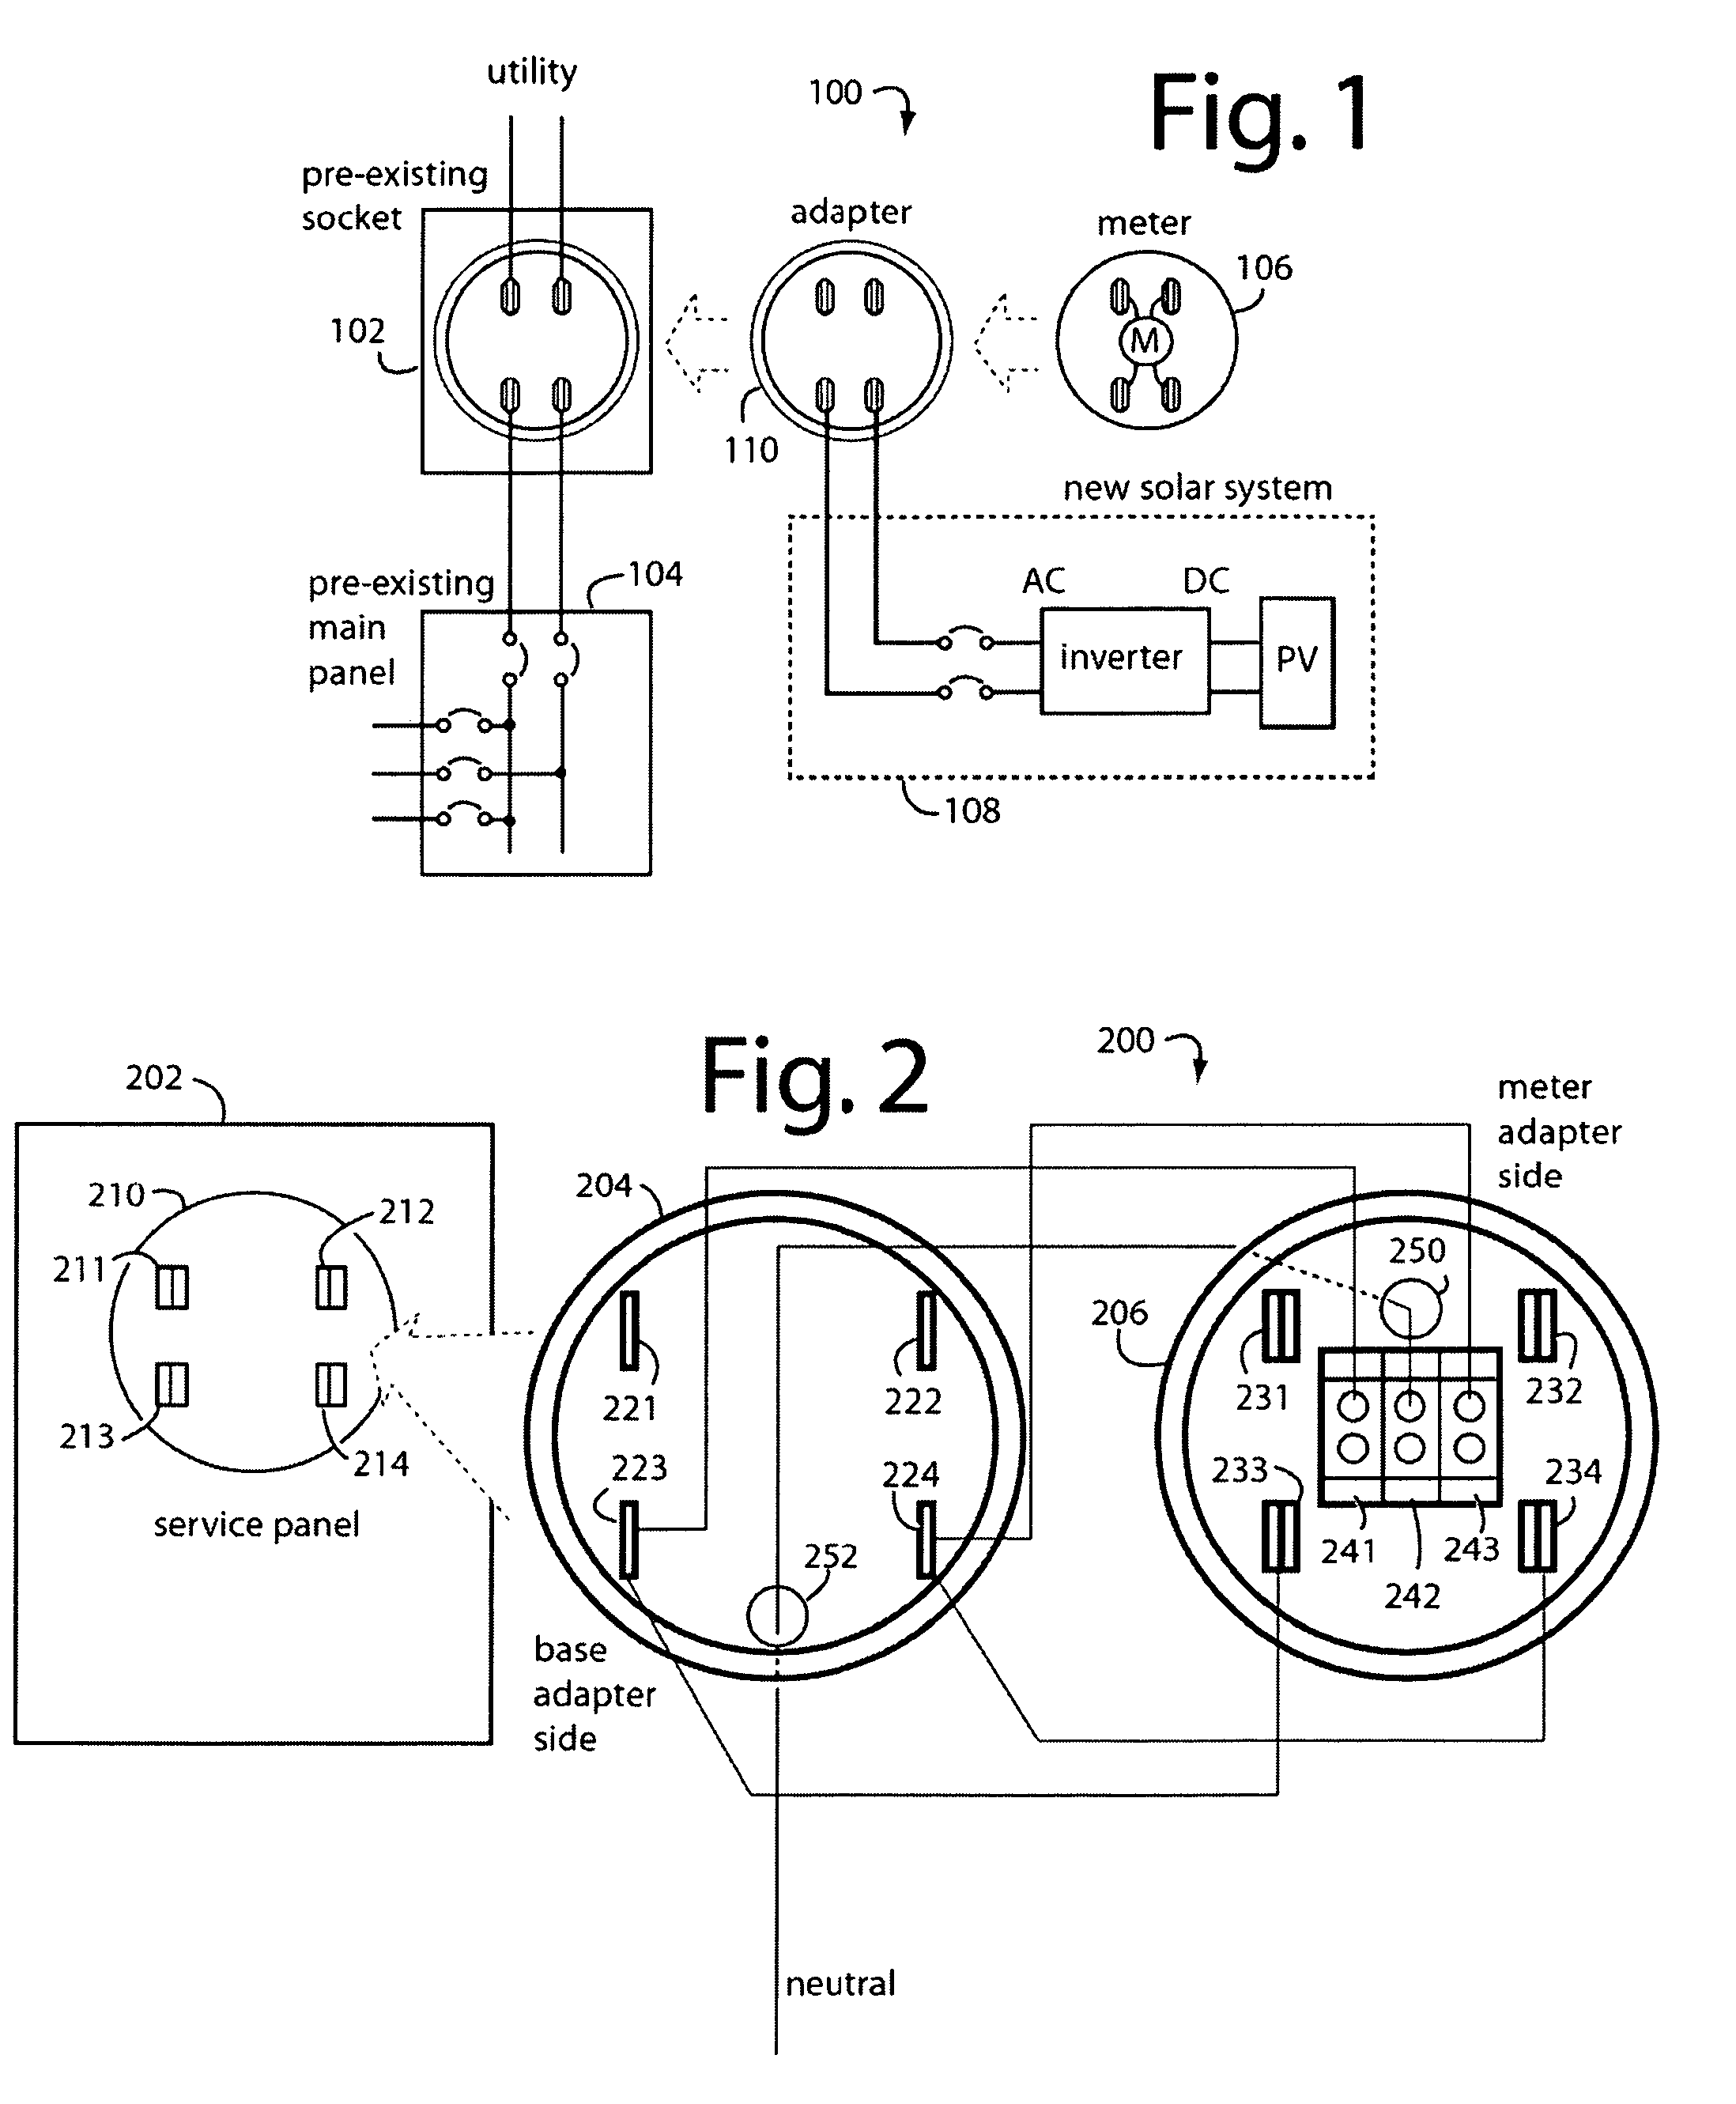 US07648389 20100119 D00001 patent us7648389 supply side backfeed meter socket adapter electric meter base wiring diagram at n-0.co